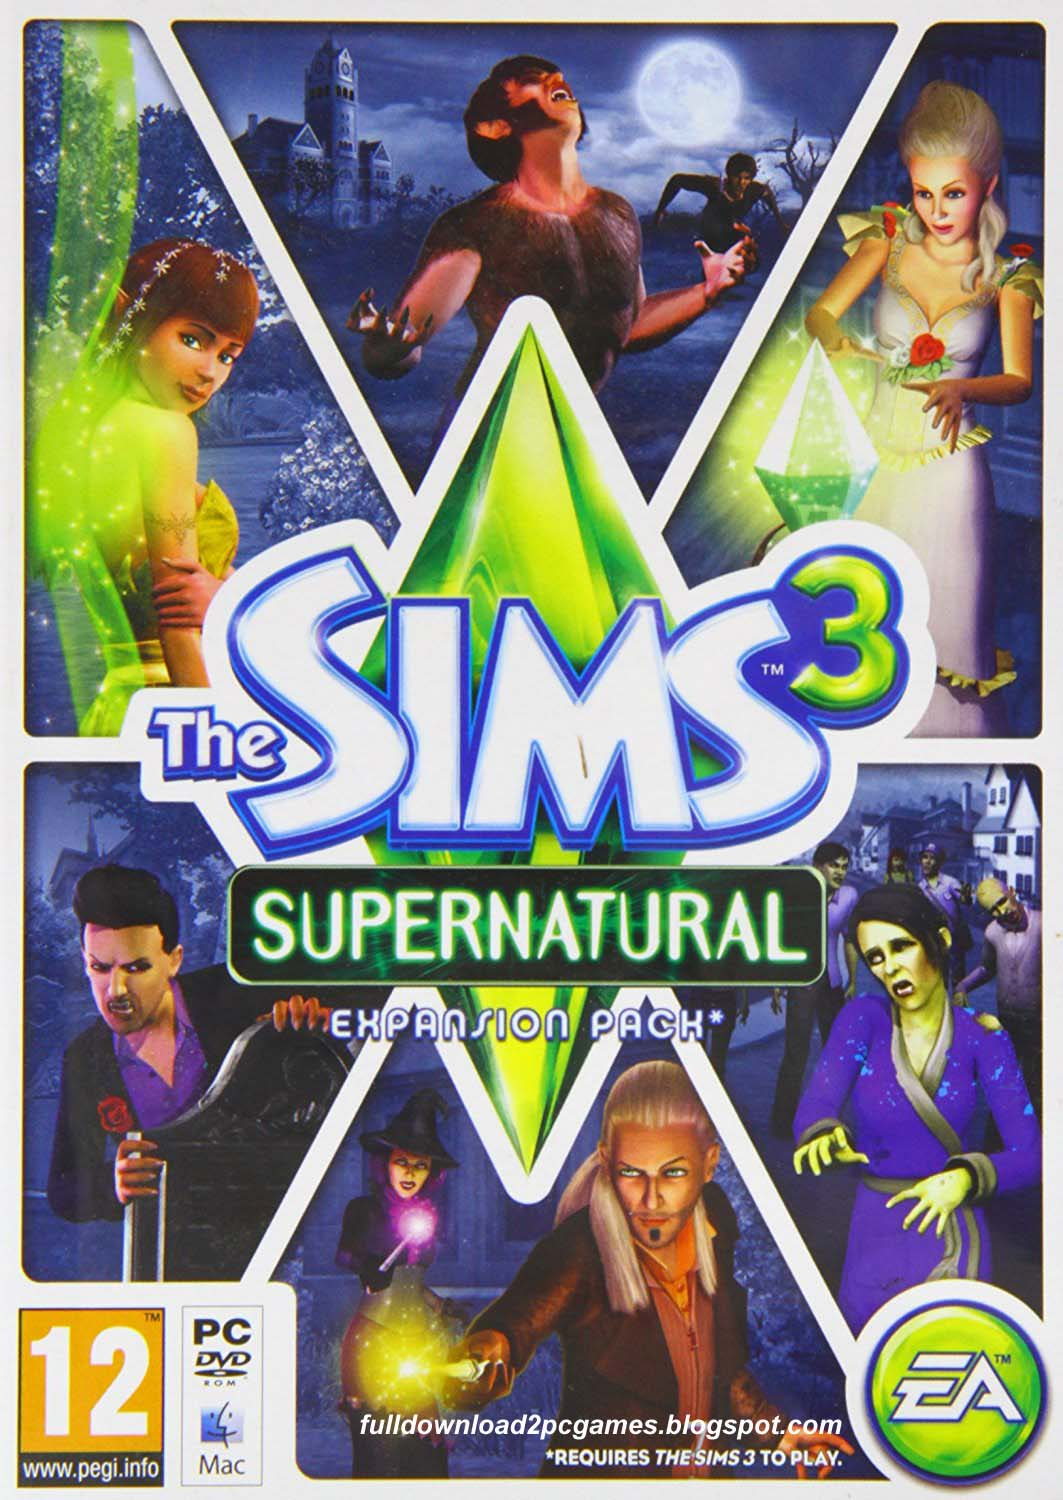 The Sims 3 Supernatural Free Download PC Game - Full Version Games